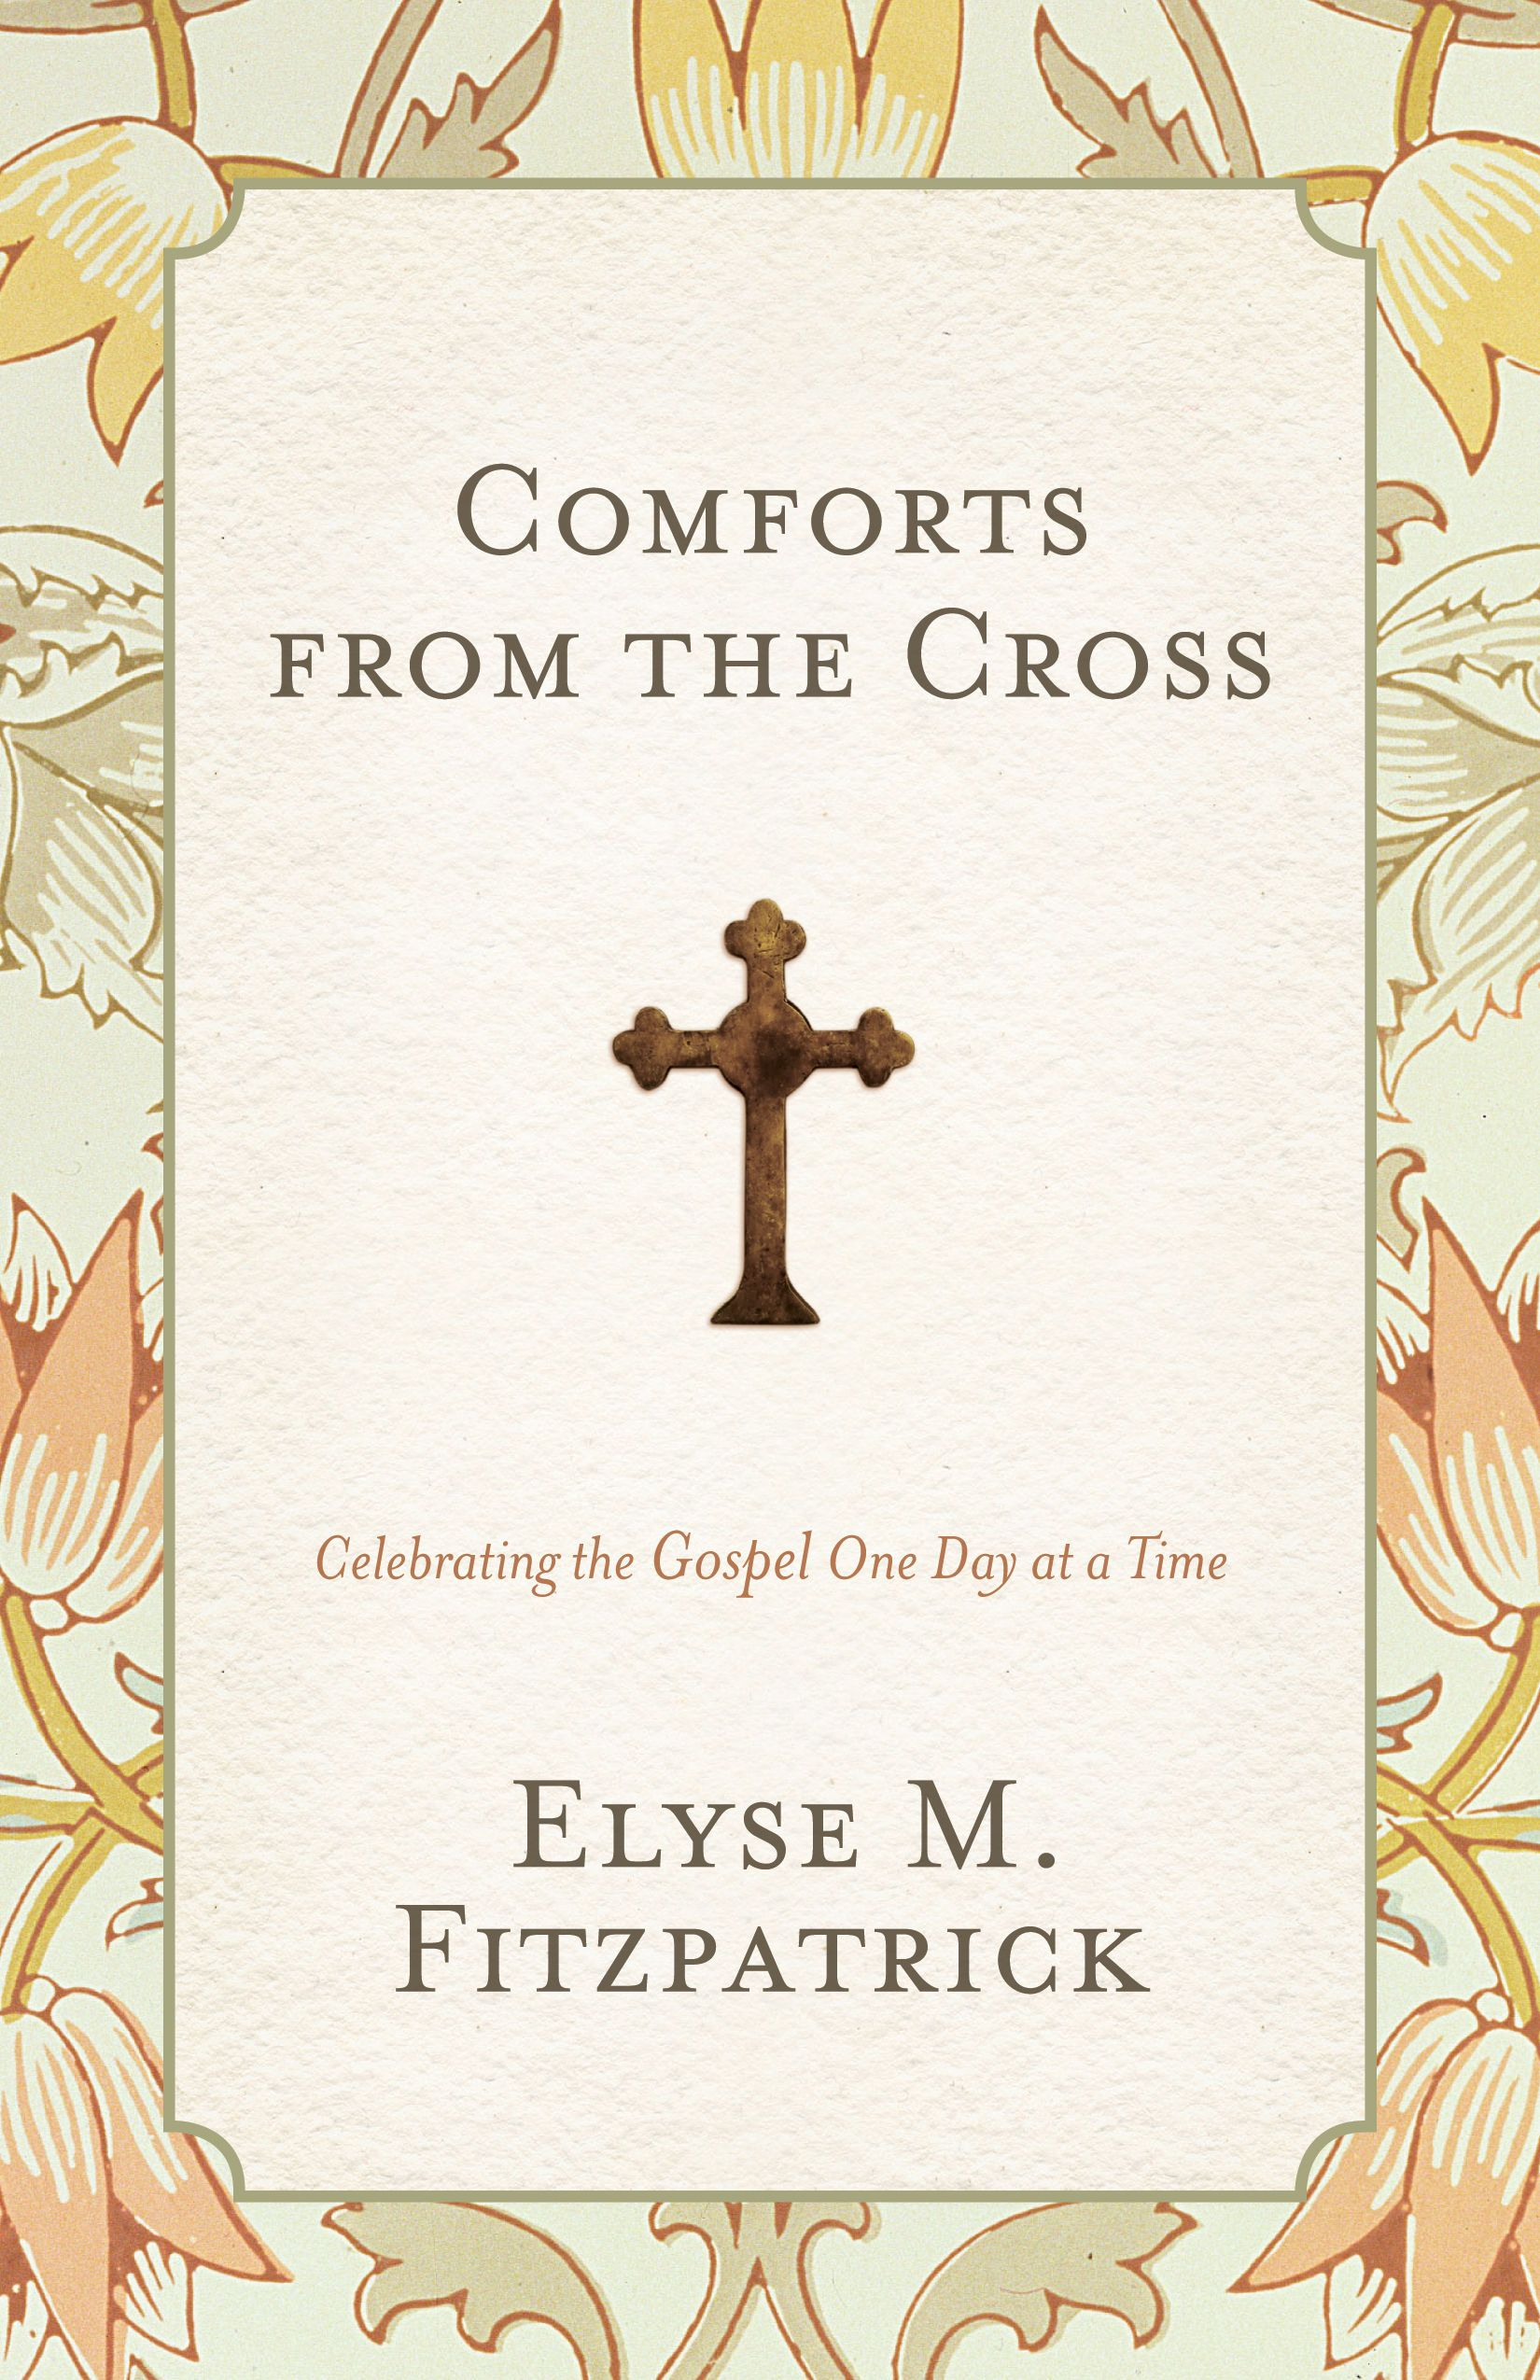 Comforts from the Cross by Elyse M. Fitzpatrick, ISBN: 9781433528217